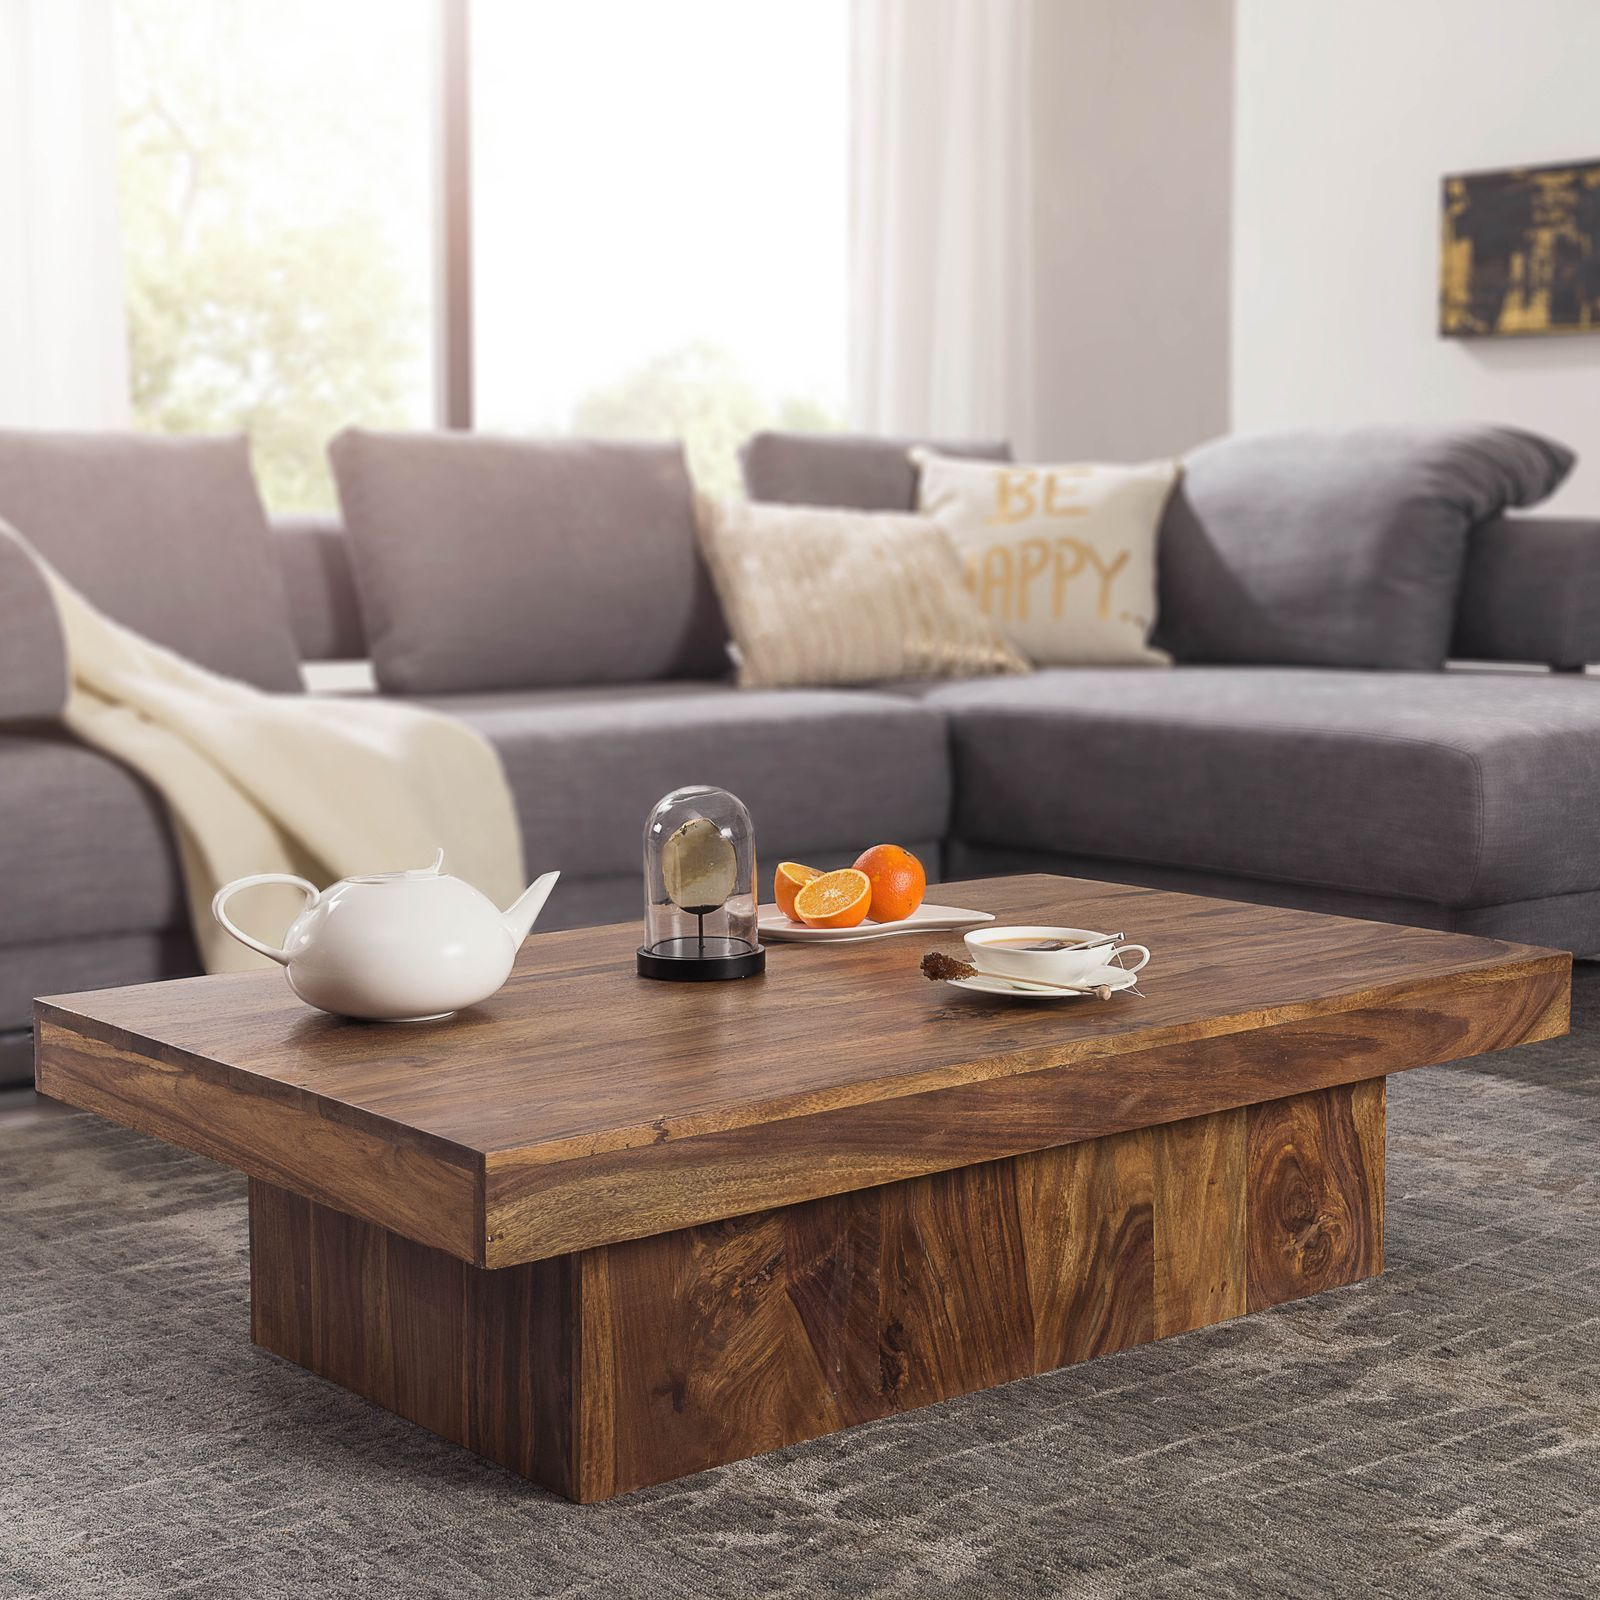 Solid wood charlie low coffee table buy furniture online insaraf com furniture online buy wooden furniture for every home saraf furniture